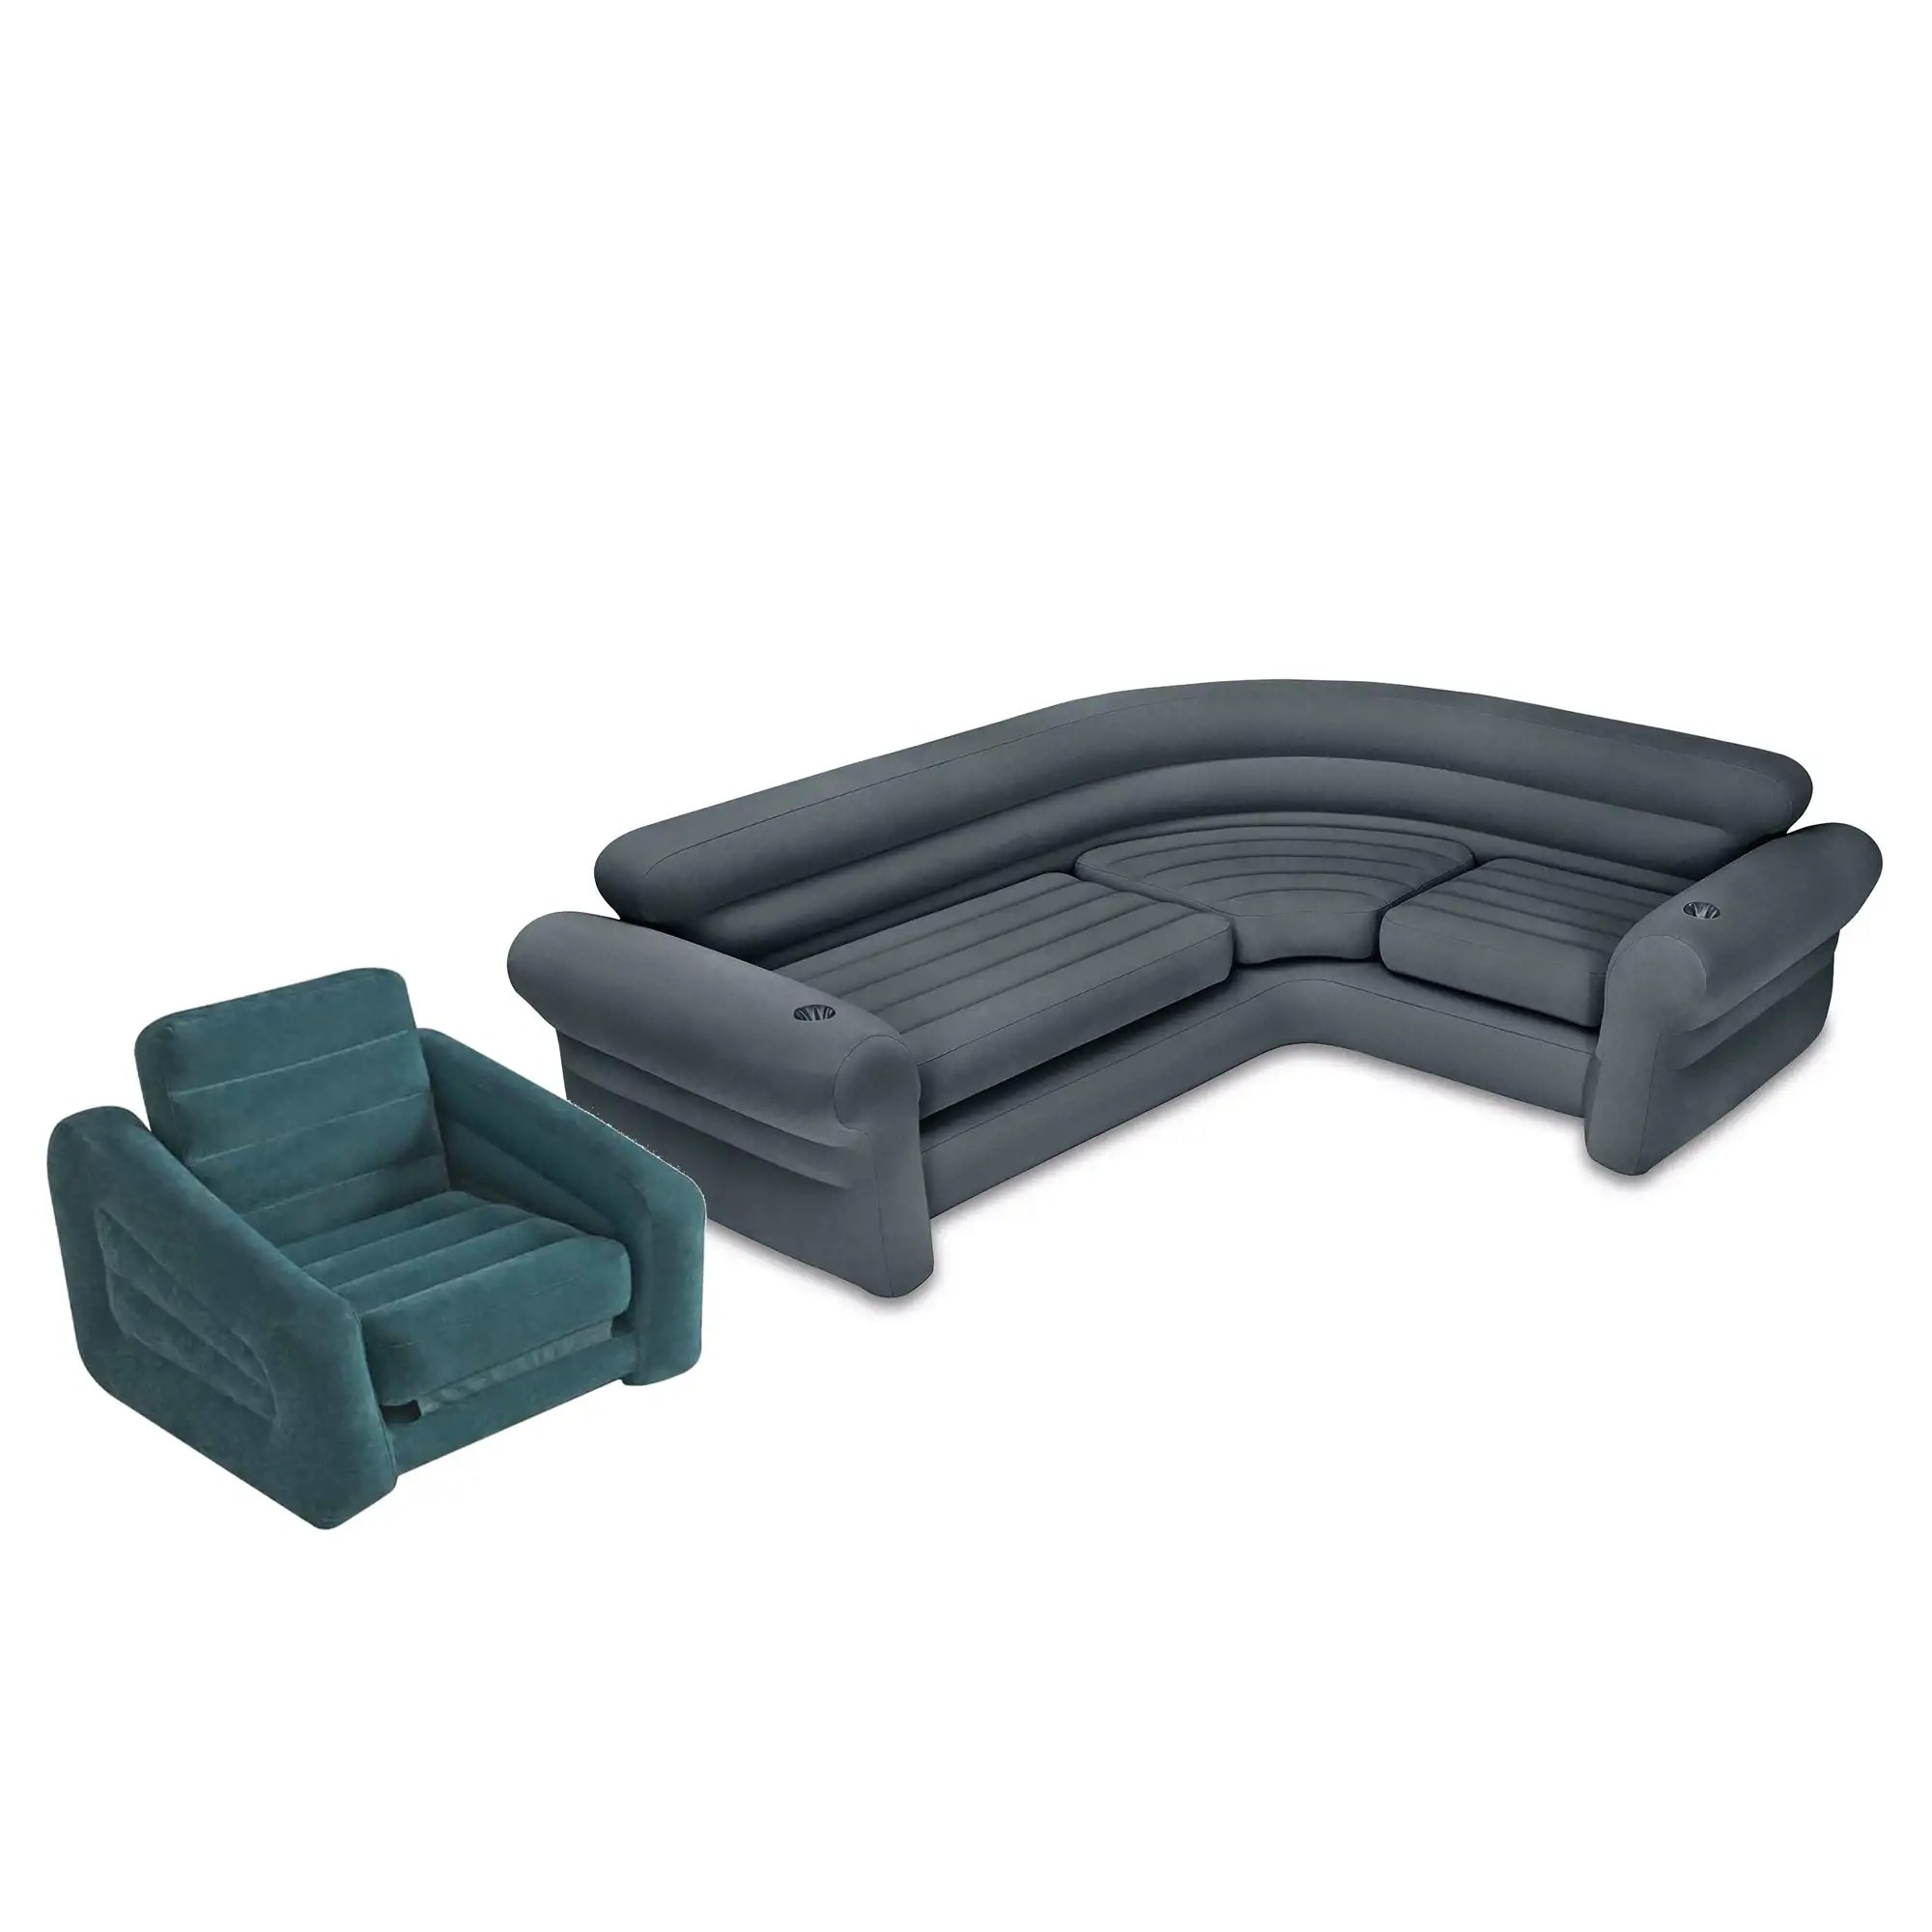 intex inflatable sofa kmart kivik with chaise corner couch sectional and pull out